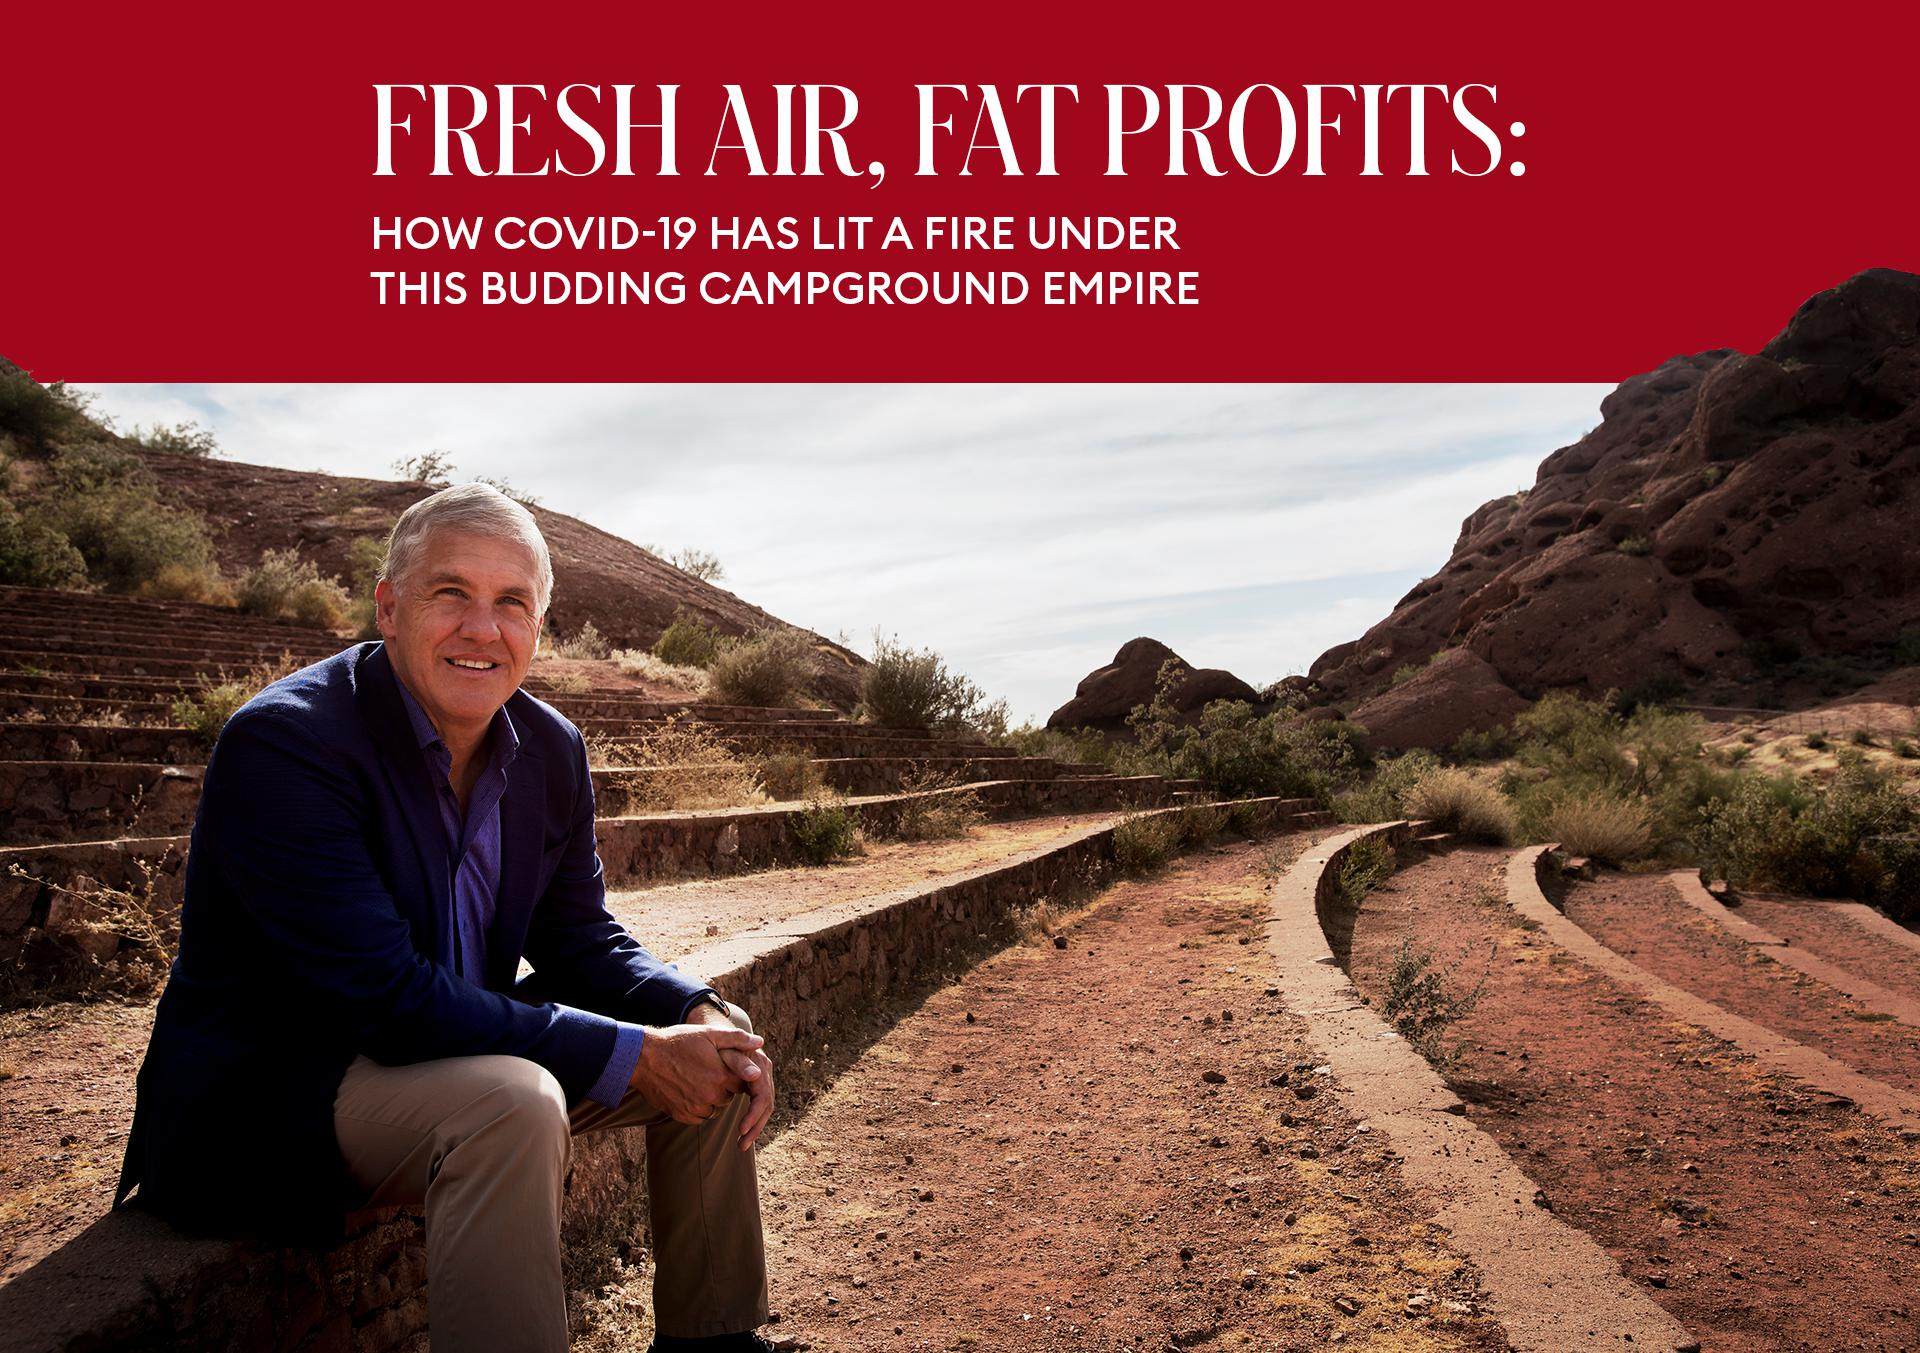 Fresh Air, Fat Profits: How Covid-19 Has Lit A Fire Under This Budding Campground Empire